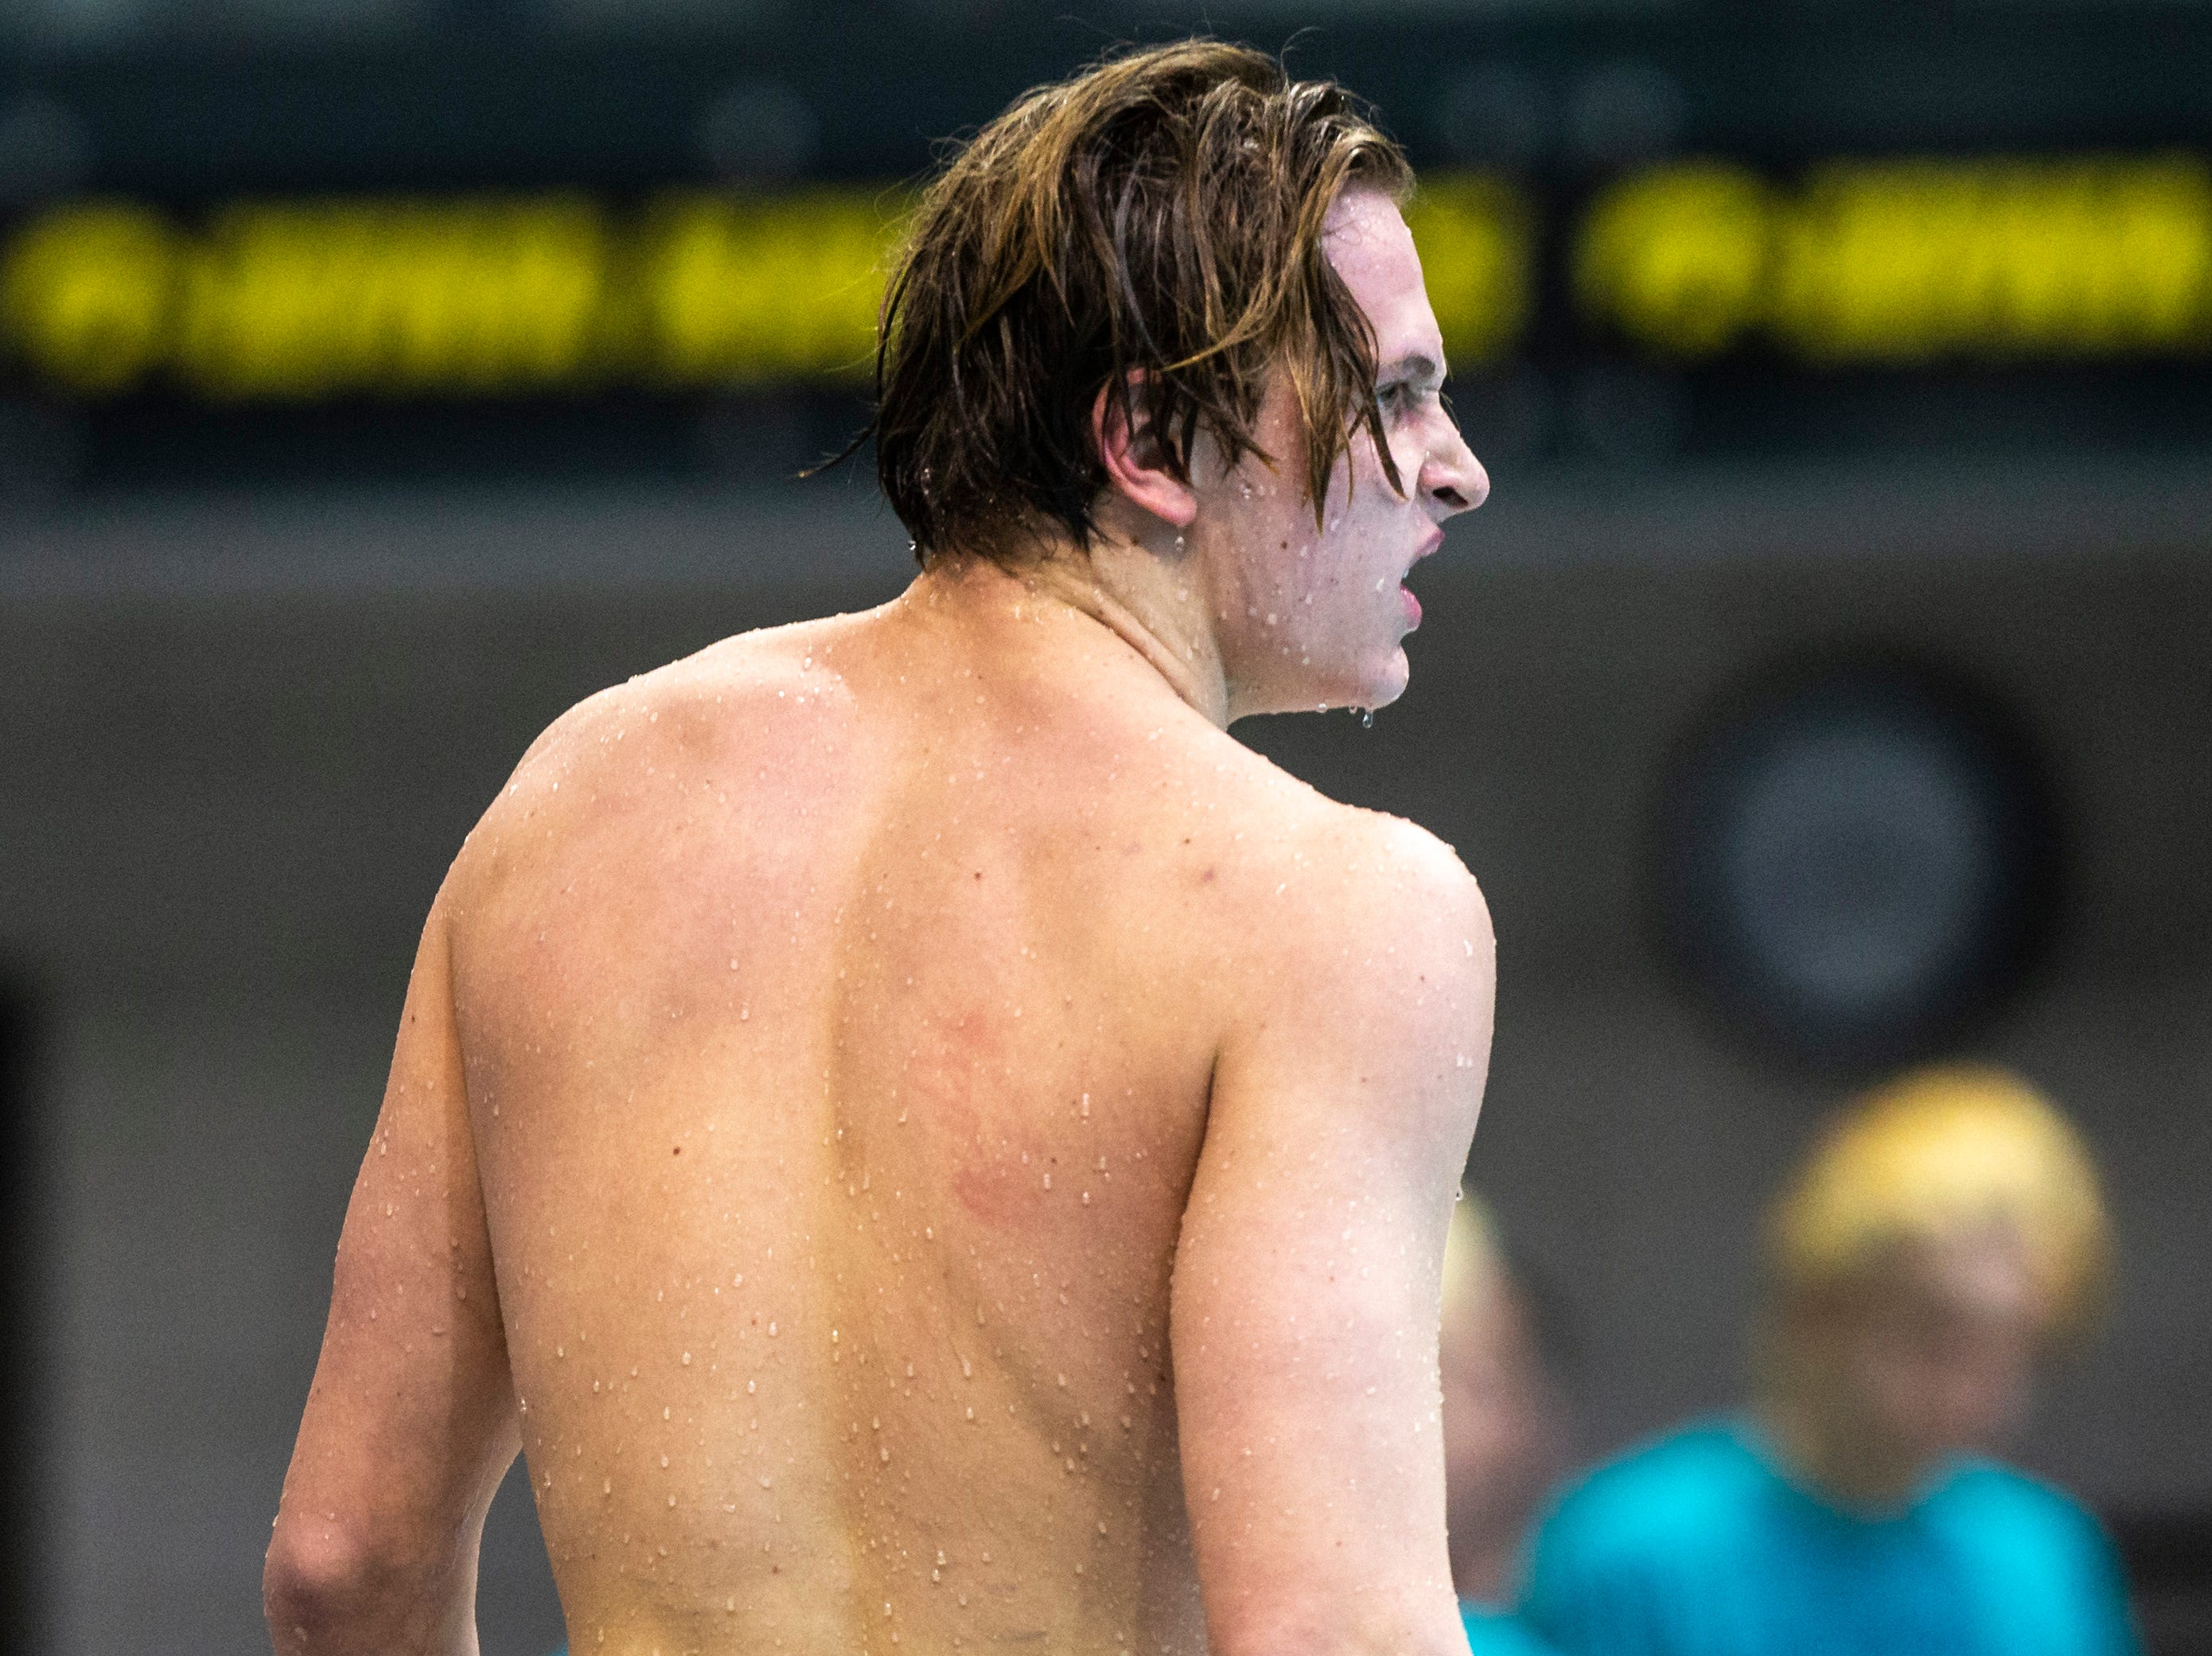 Iowa City High junior Forrest Frazier walks on the deck after winning the third heat of 100 yard breaststroke during the Iowa boys' state swimming regional championship meet on Saturday, Feb. 9, 2019 at Campus Recreation and Wellness Center on the University of Iowa campus in Iowa City, Iowa. Frazier finished first overall, with a time of 55.17.